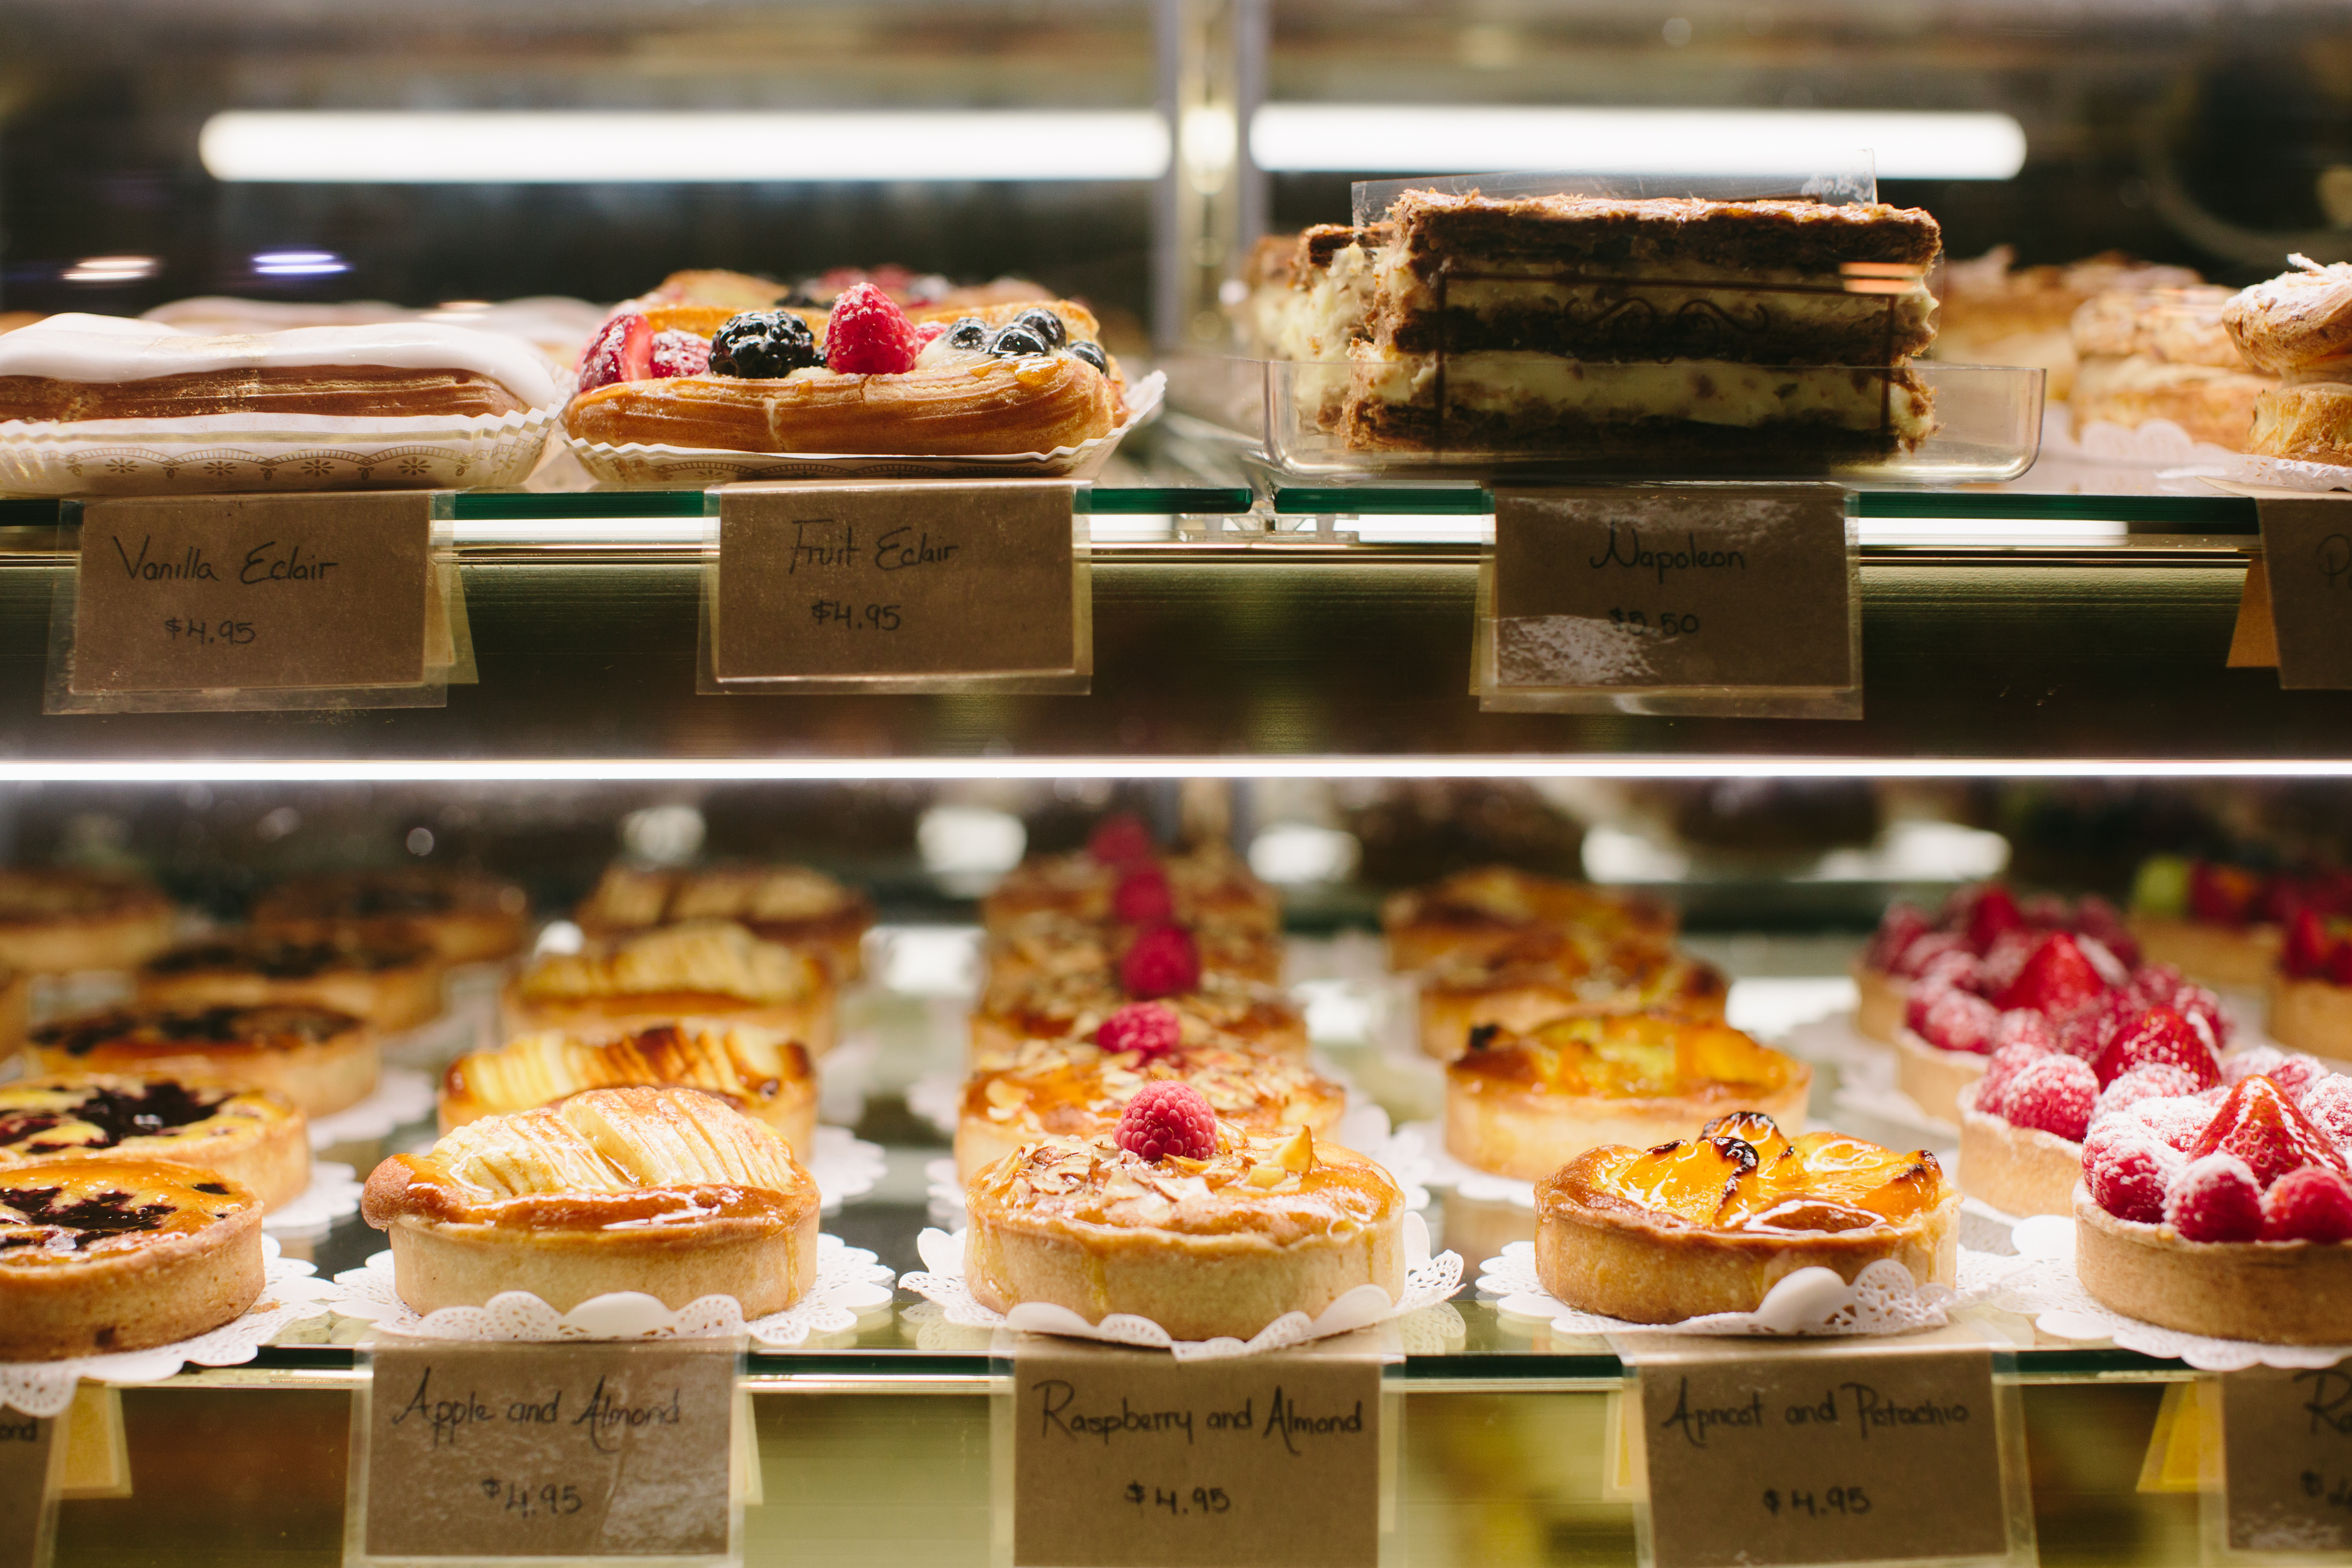 Two shelves of five rows colorful custard fruit tarts, eclairs, and Napoleons at Saint-Germain Bakery in Atlanta displayed in a lighted glass case. Tags placed in front of each row display the names of items along with the prices